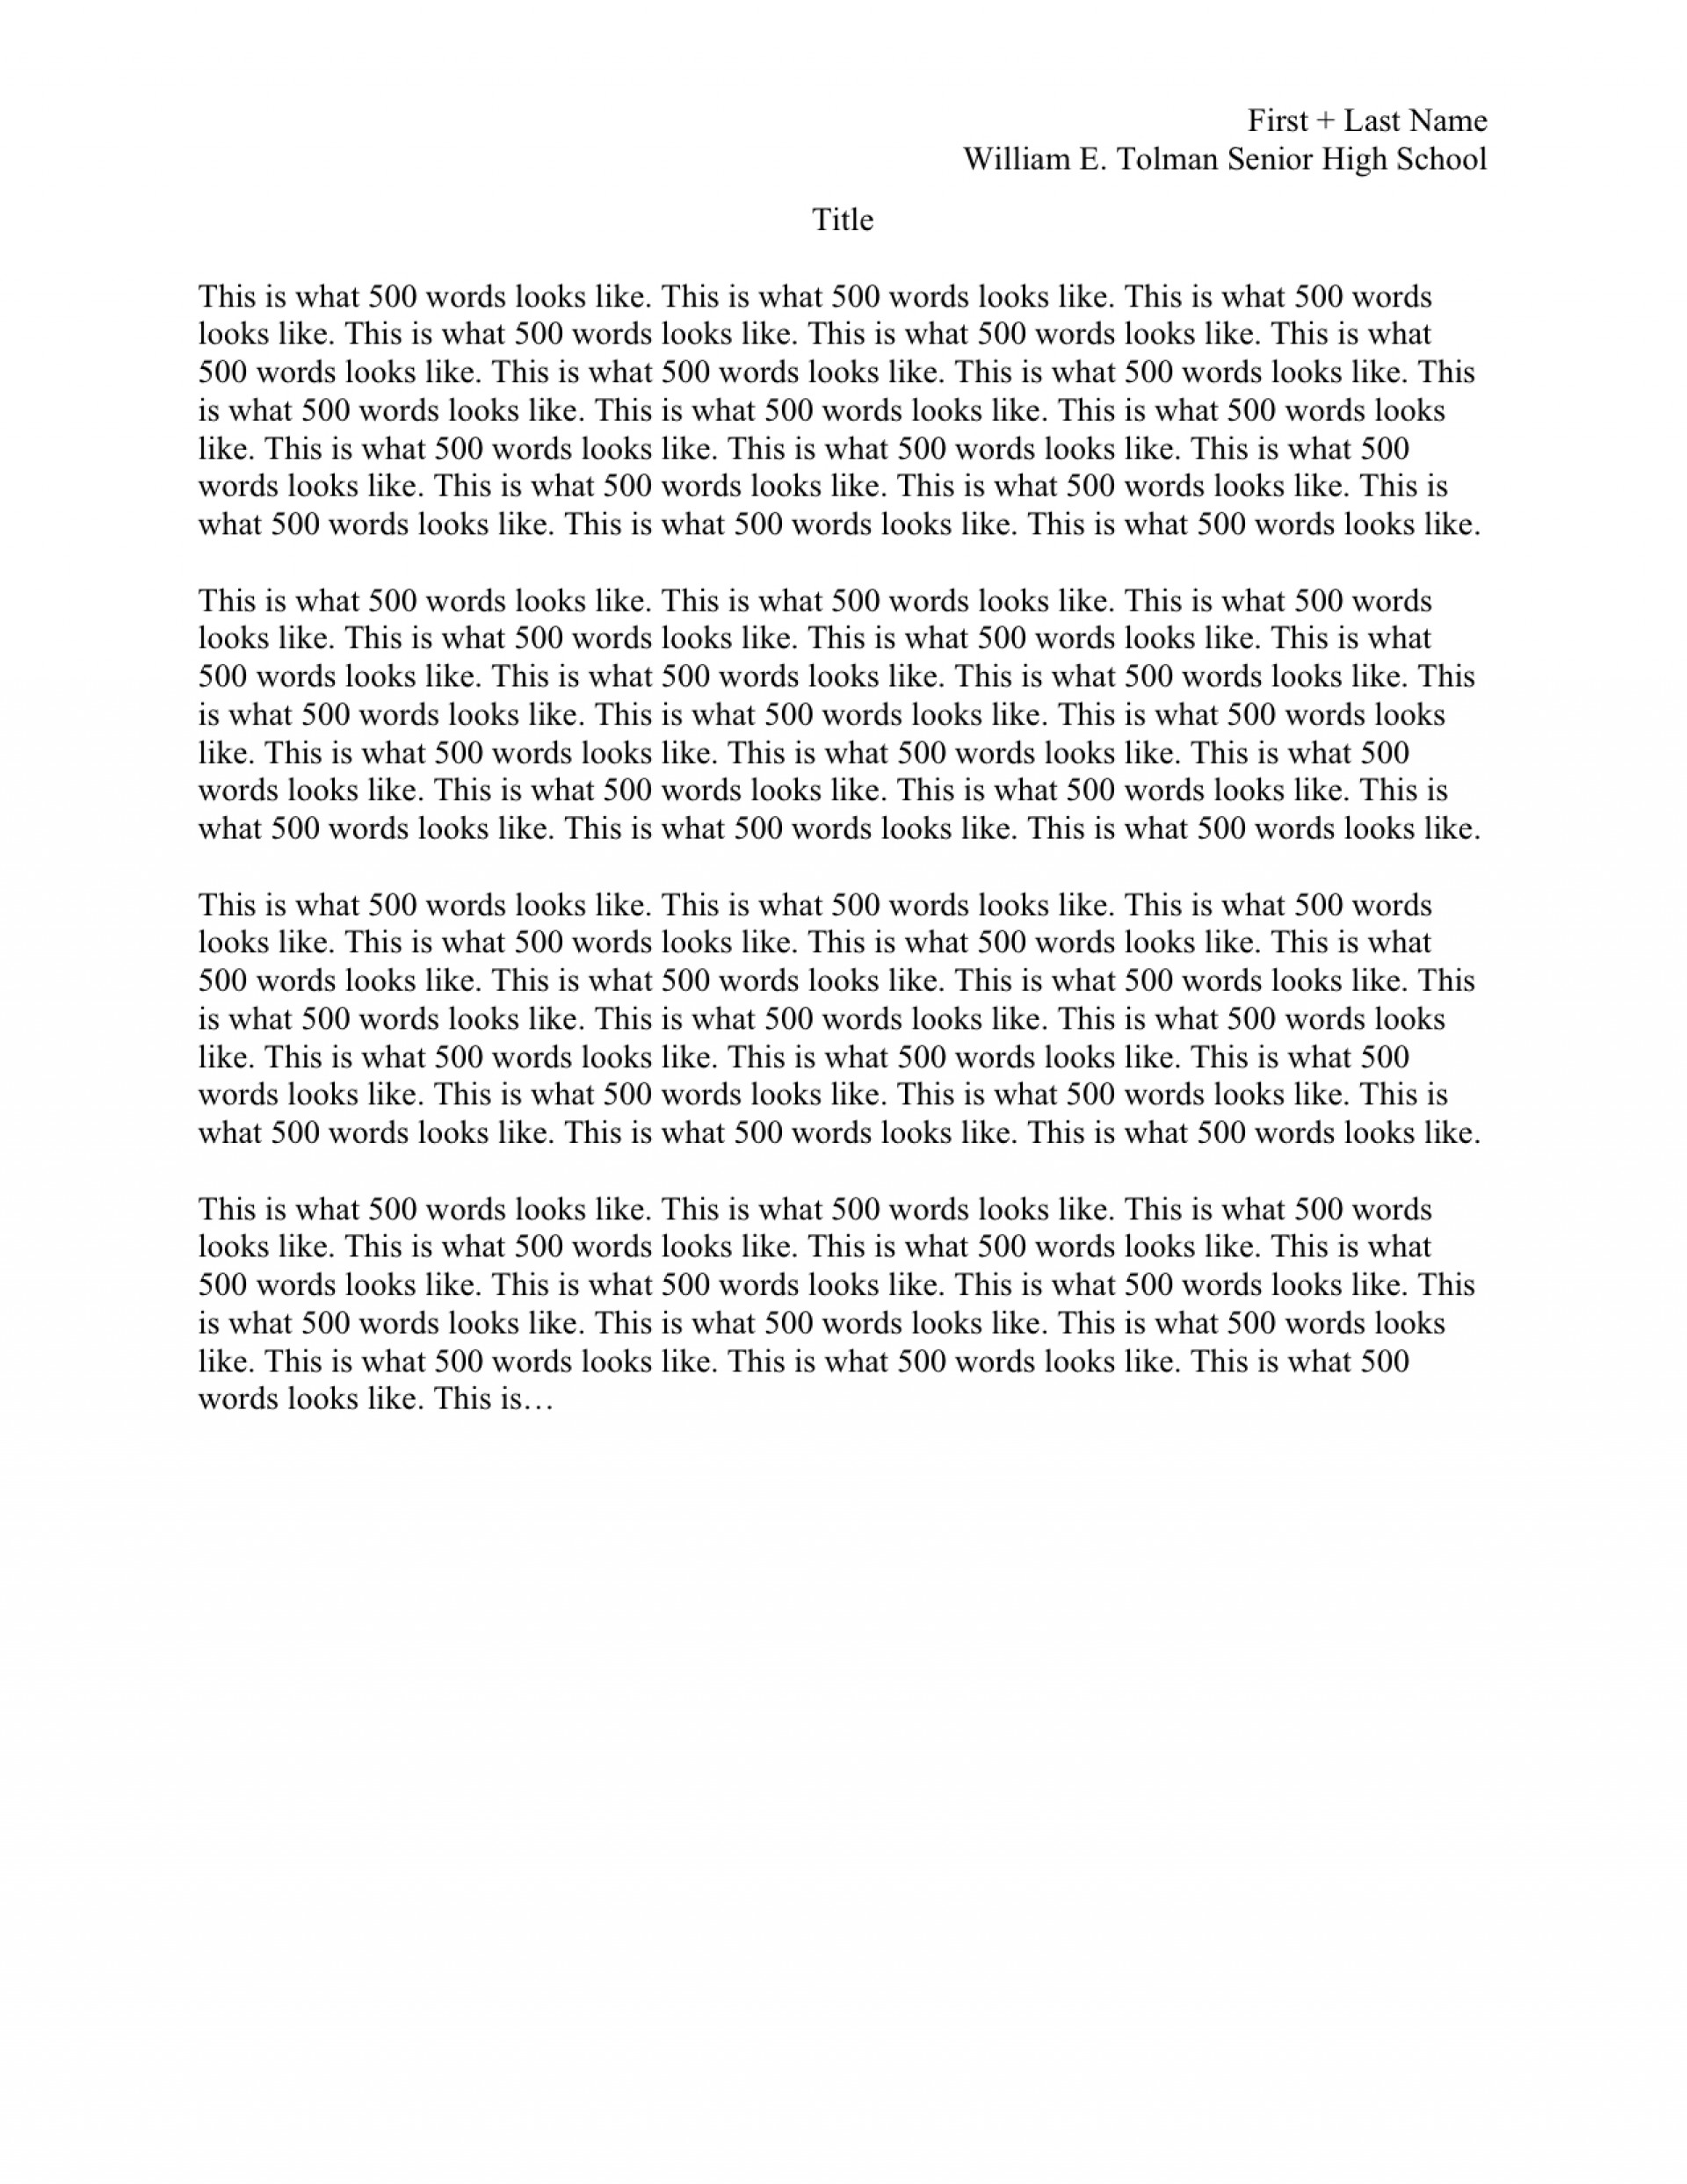 012 How To Format College Application Essay Format1 Awesome A Scholarship Your 1920